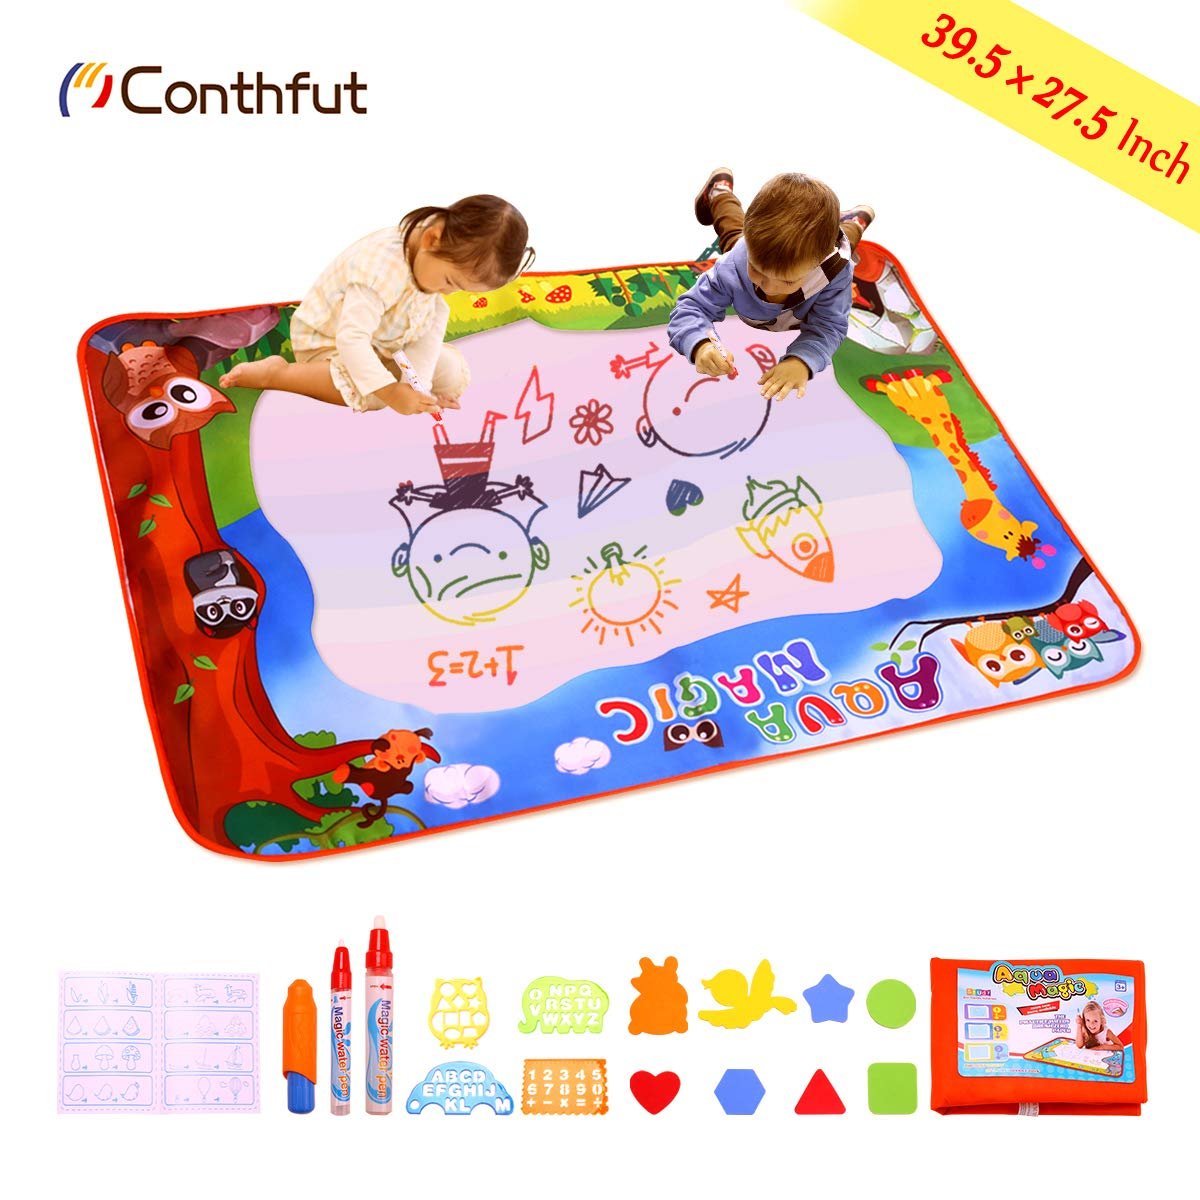 Water Doodle Mat,Conthfut Aqua Magic Mat Extra Large Size 39.5'' X 27.5 inch Water Drawing Mat Kids Toys Toddlers Painting Pad Writing Mats in 6 Rainbow Colors with 3 Magic Pen and 12 Drawing Templates